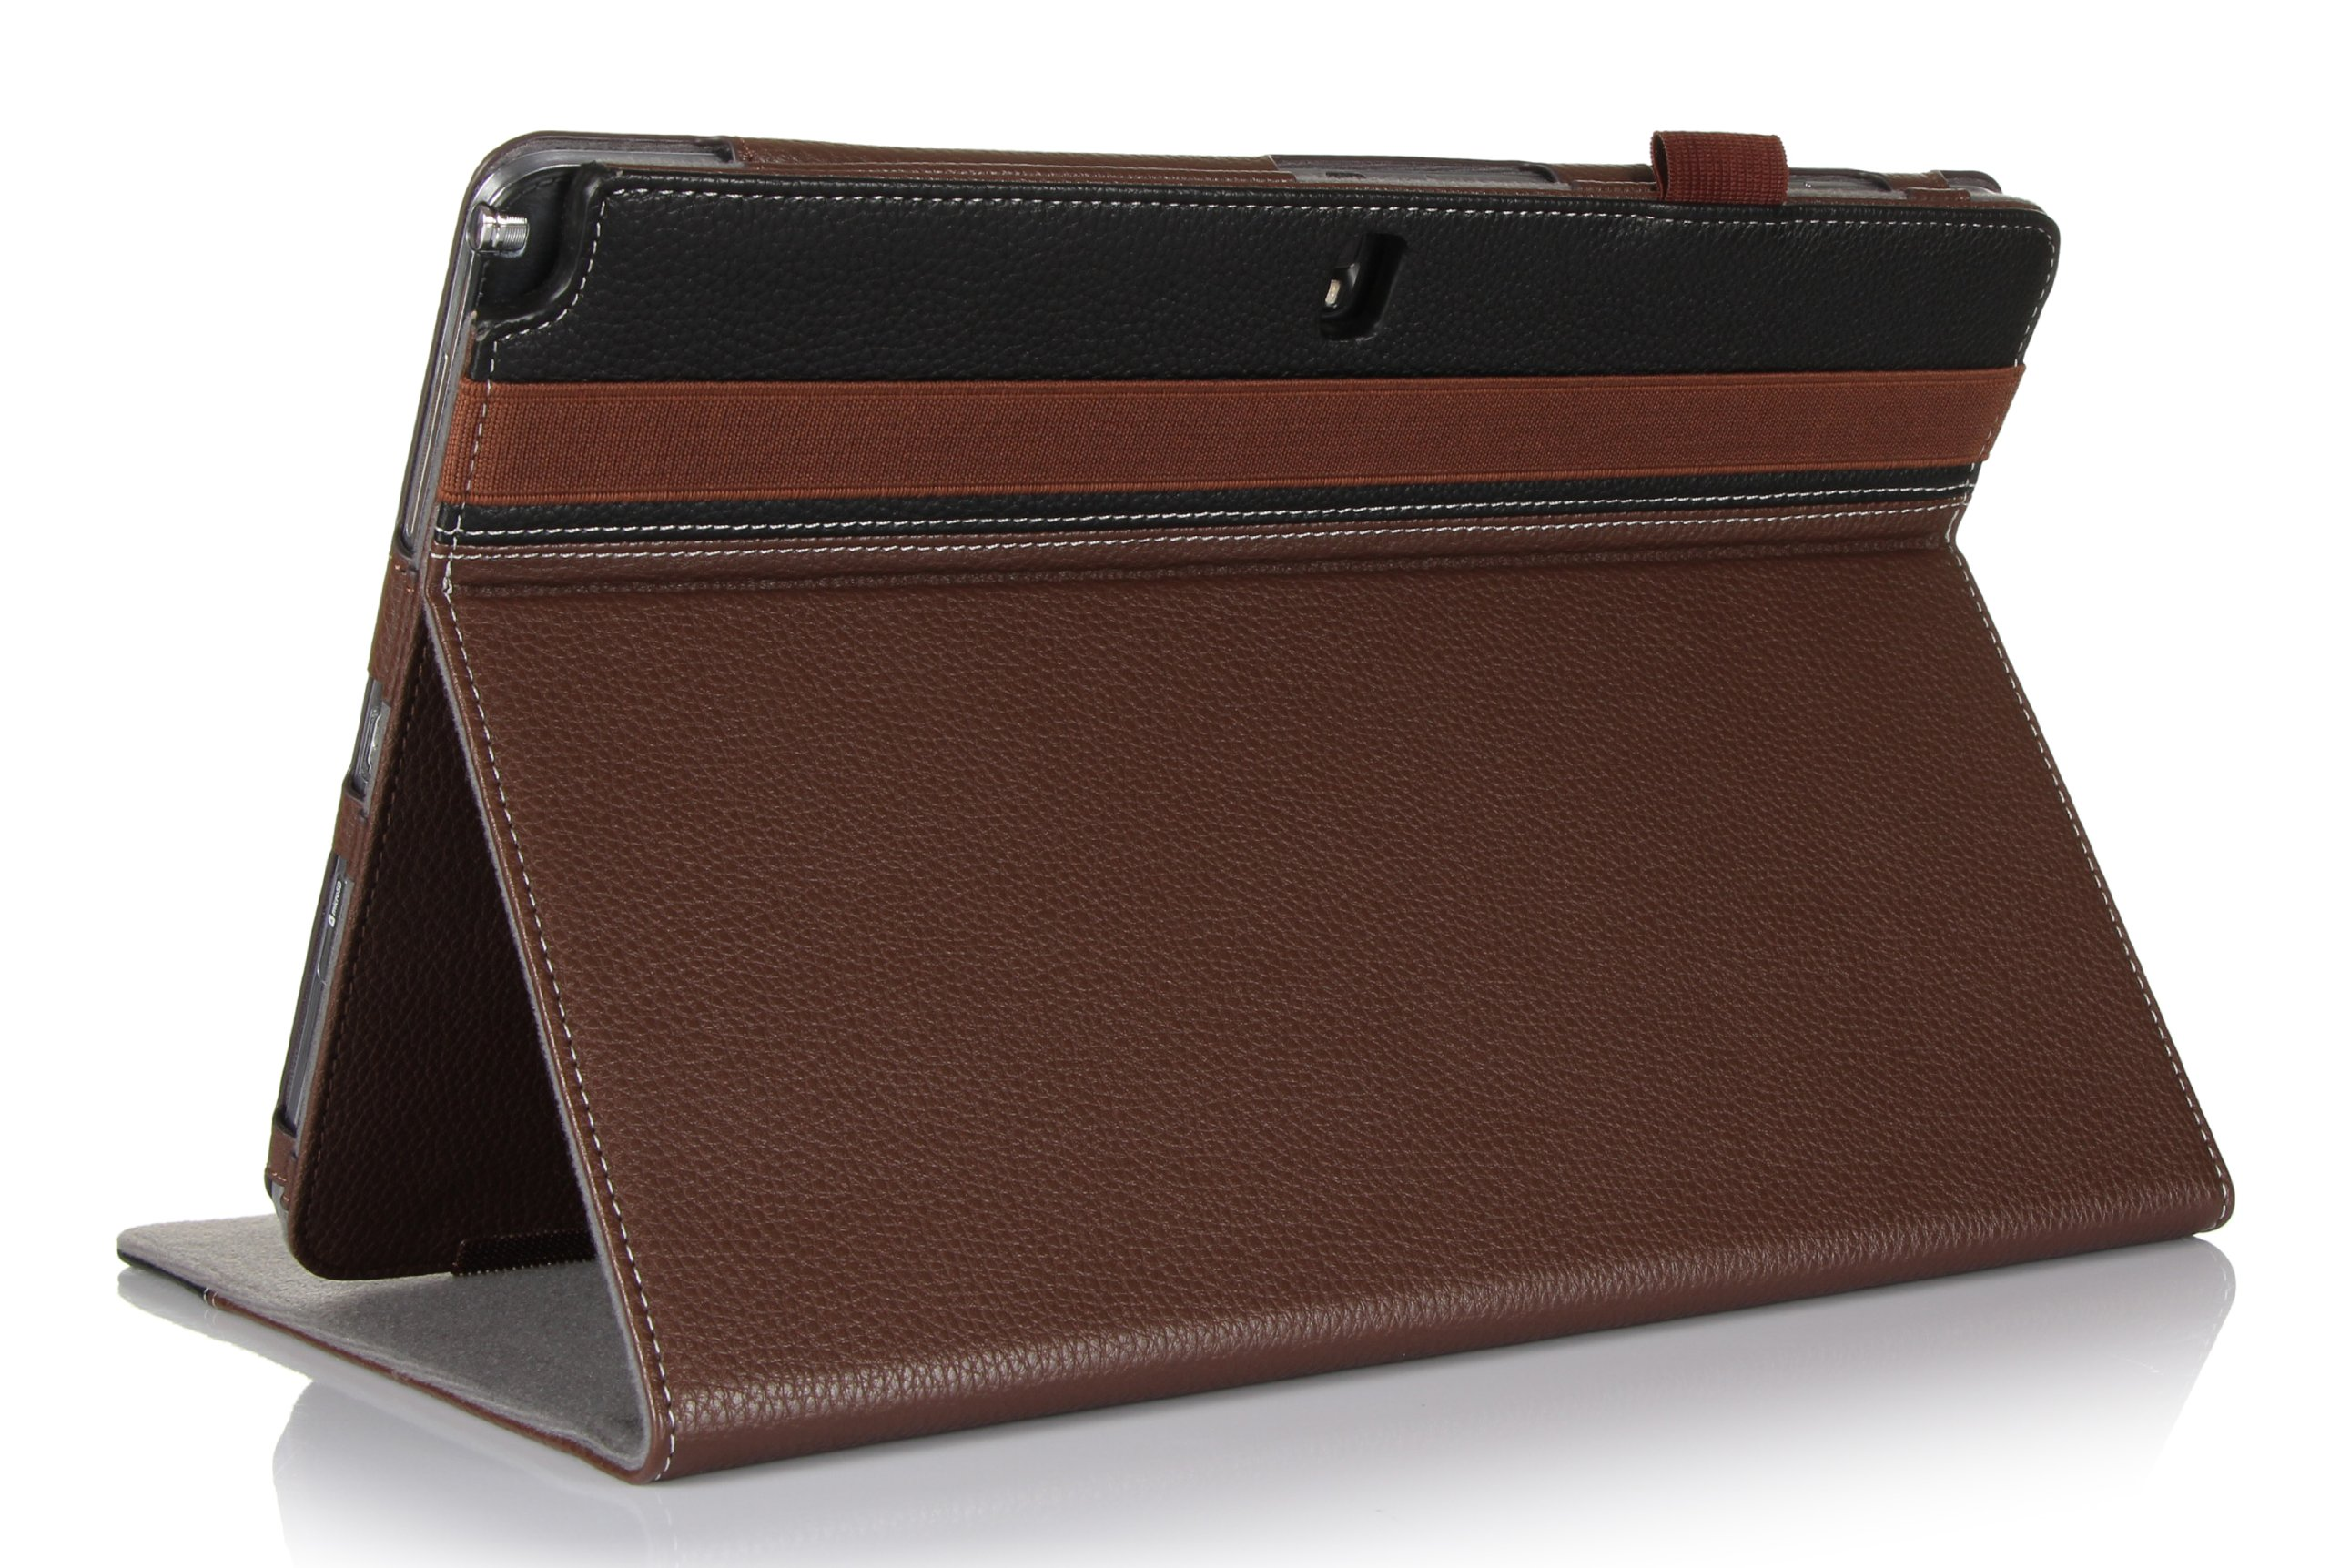 ProCase Samsung Galaxy PRO 12.2 Case (Galaxy Tab PRO 12.2 Inch and Note PRO 12.2), Built-in Stand with Multiple viewing Angles, bonus Stylus Pen included (Brown/Black)